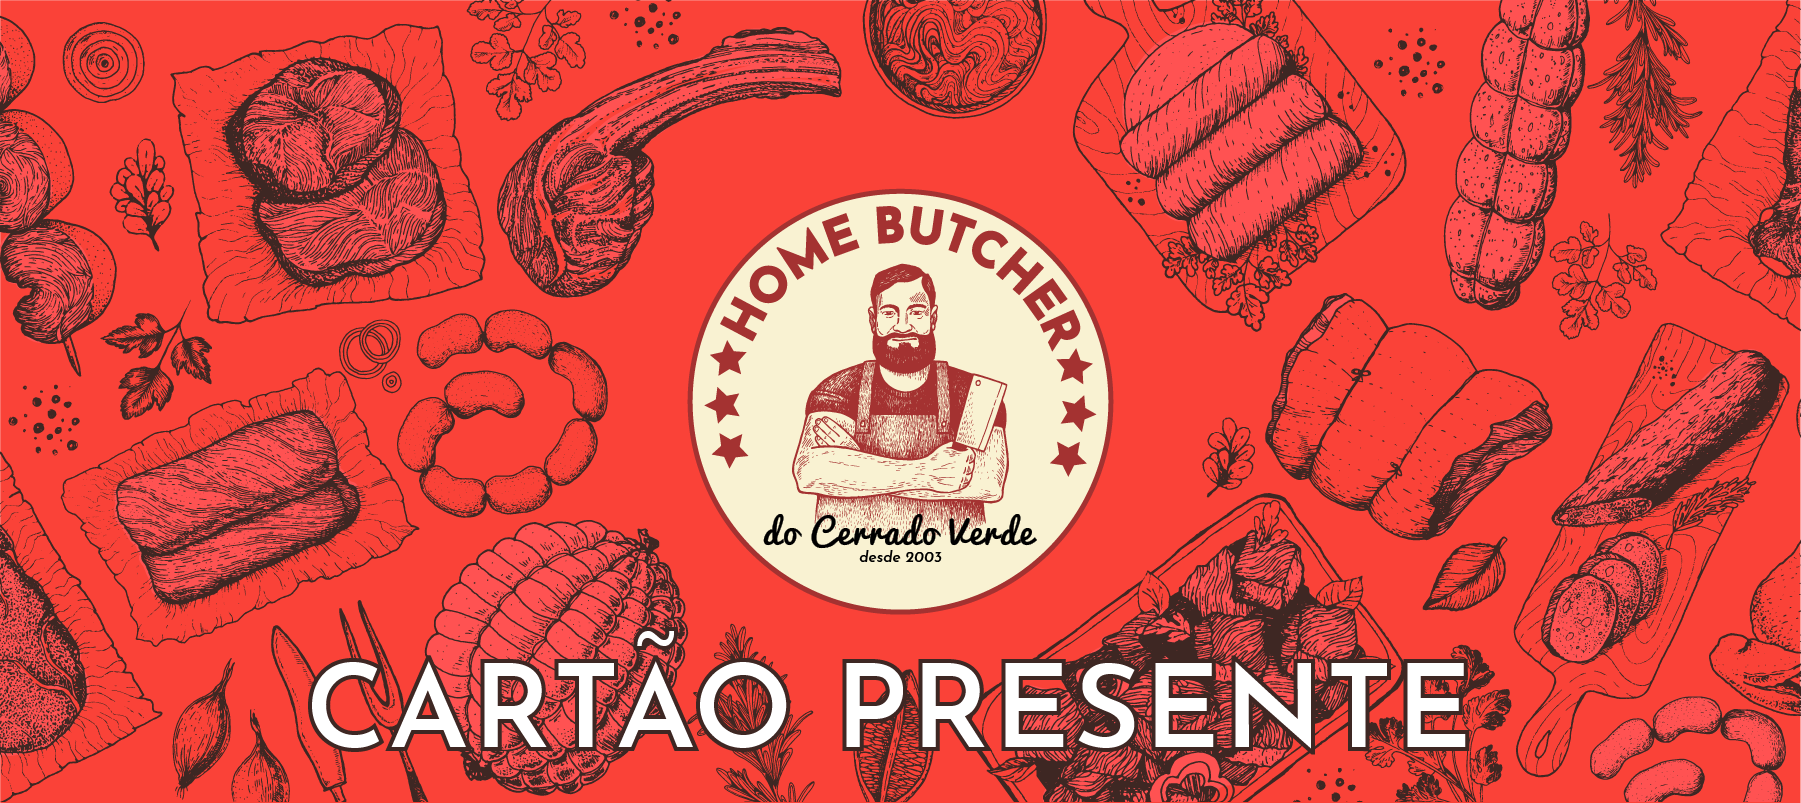 Cartão Presente do Home Butcher